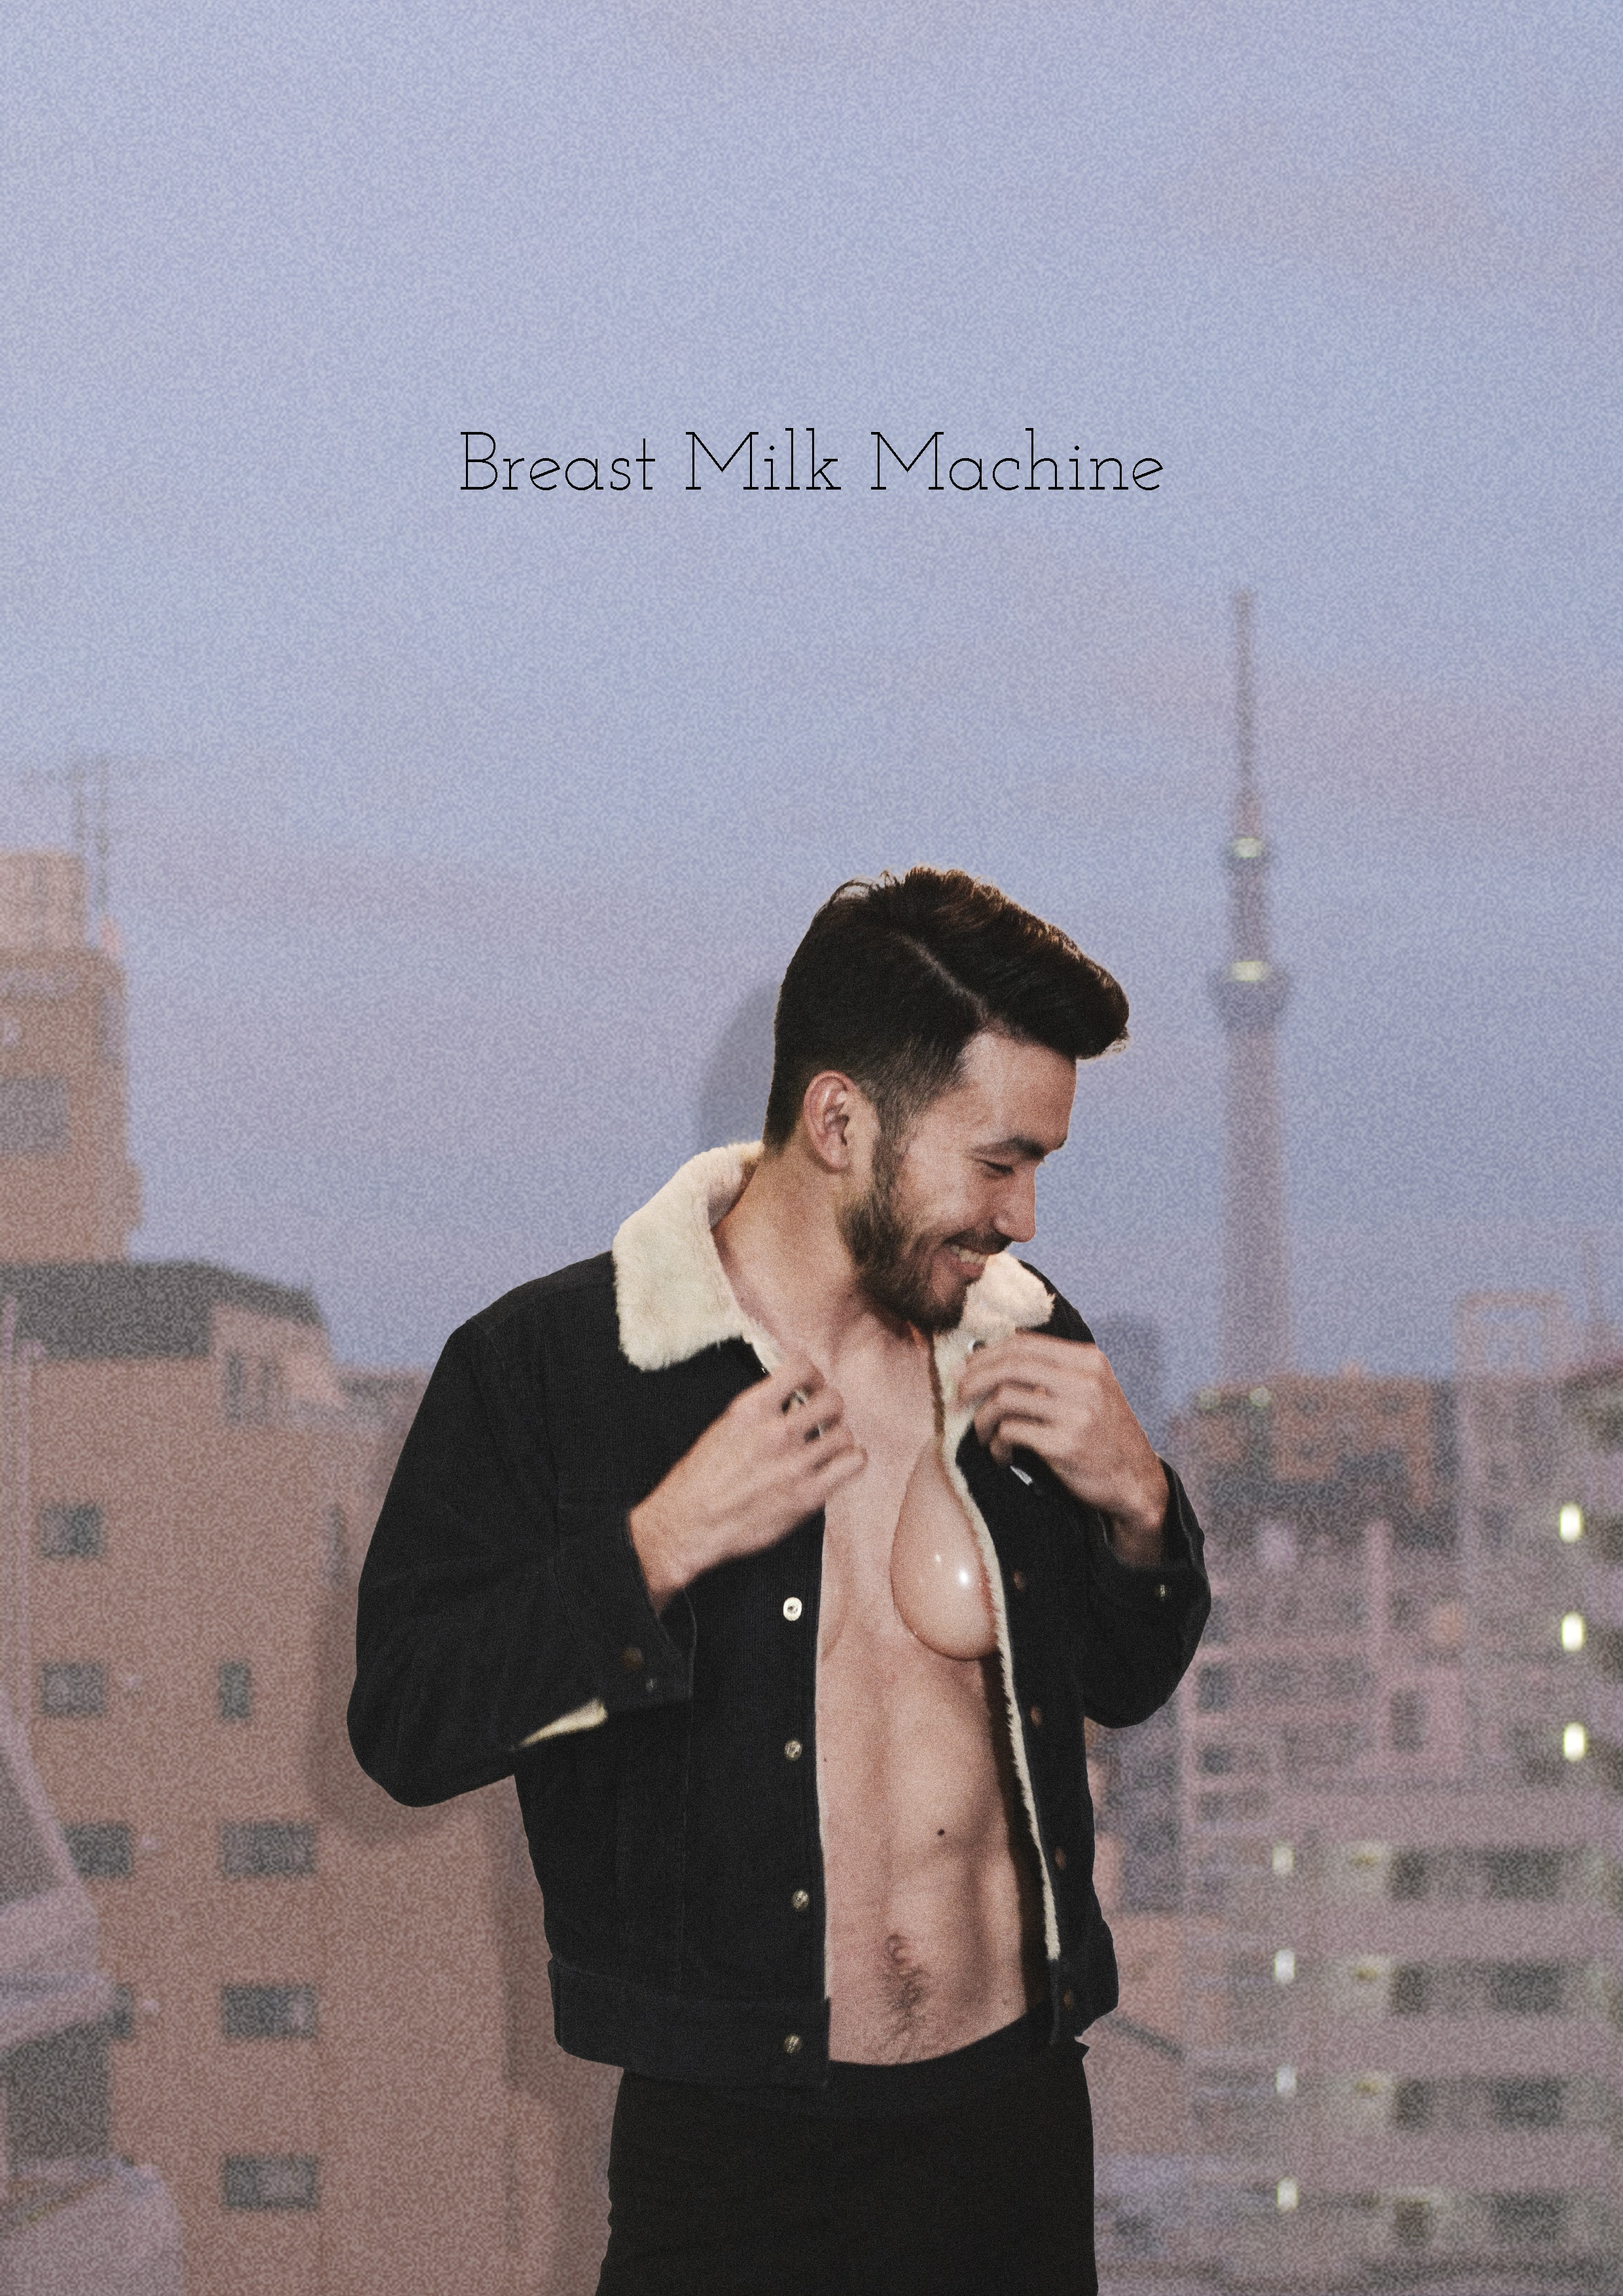 Breast Milk Machine